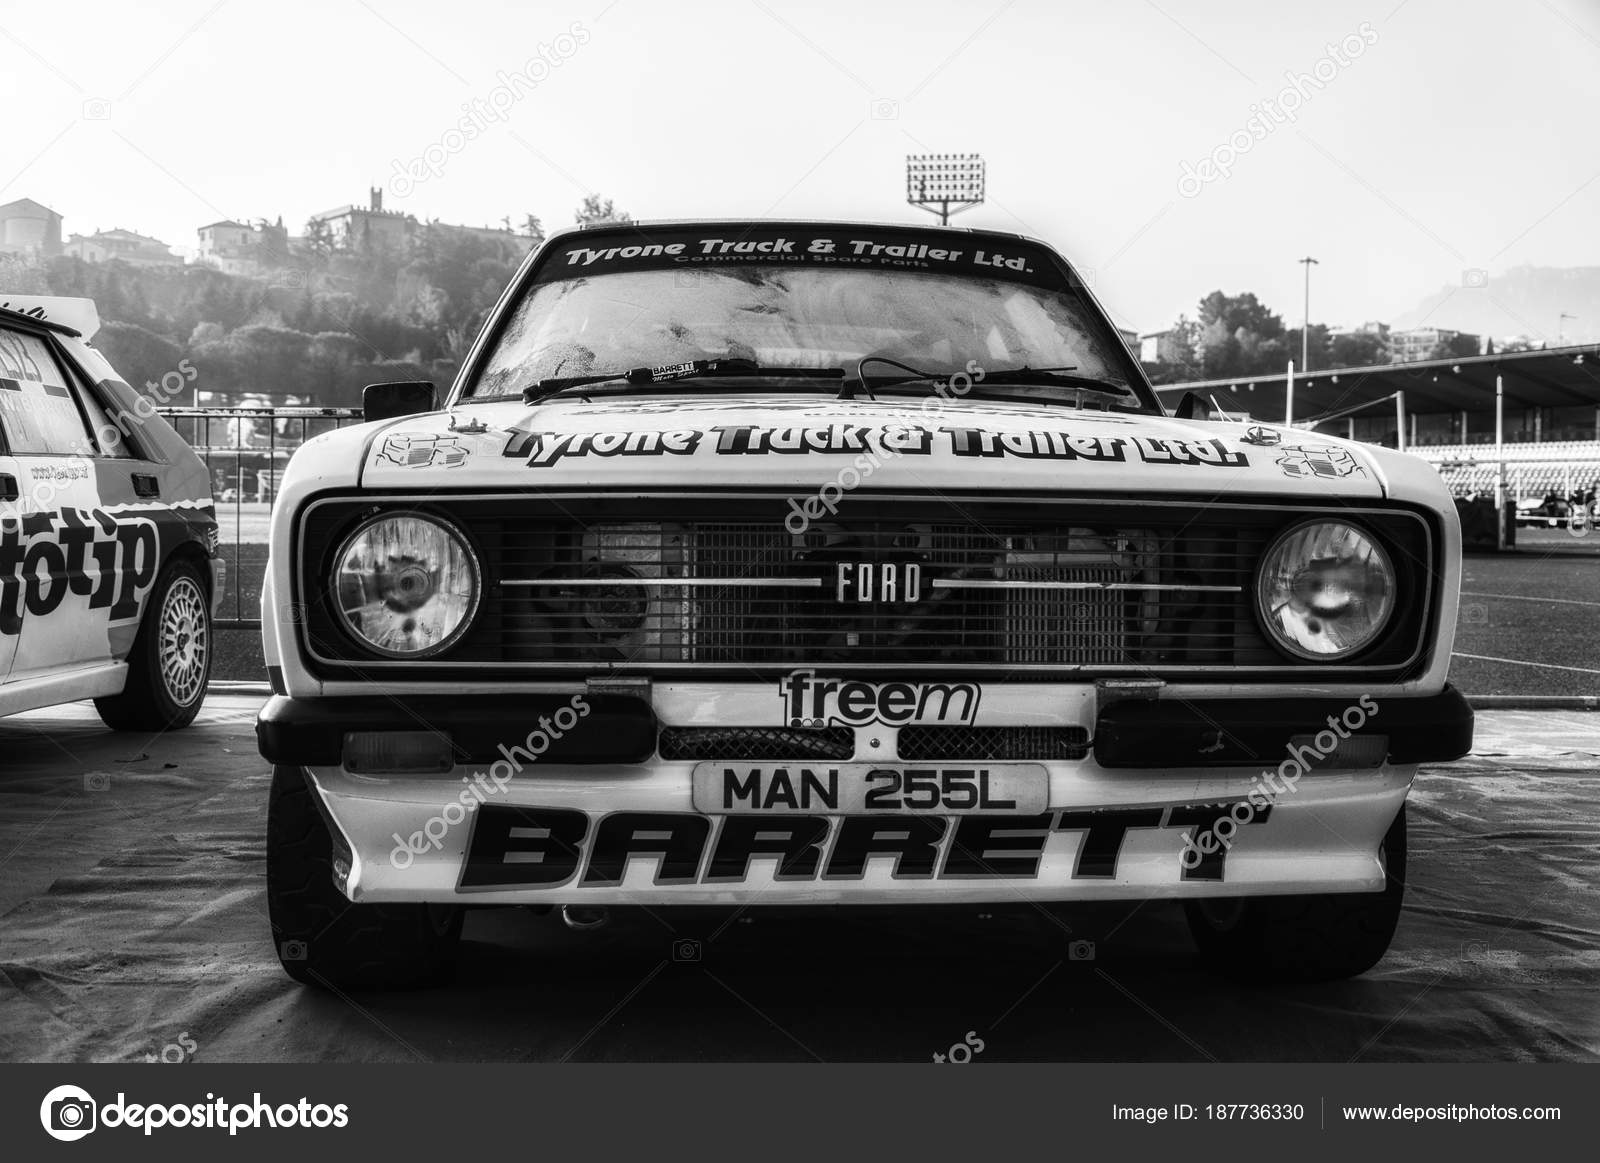 Ford Escort 1977 Old Racing Car Rally Historical Race – Stock ...